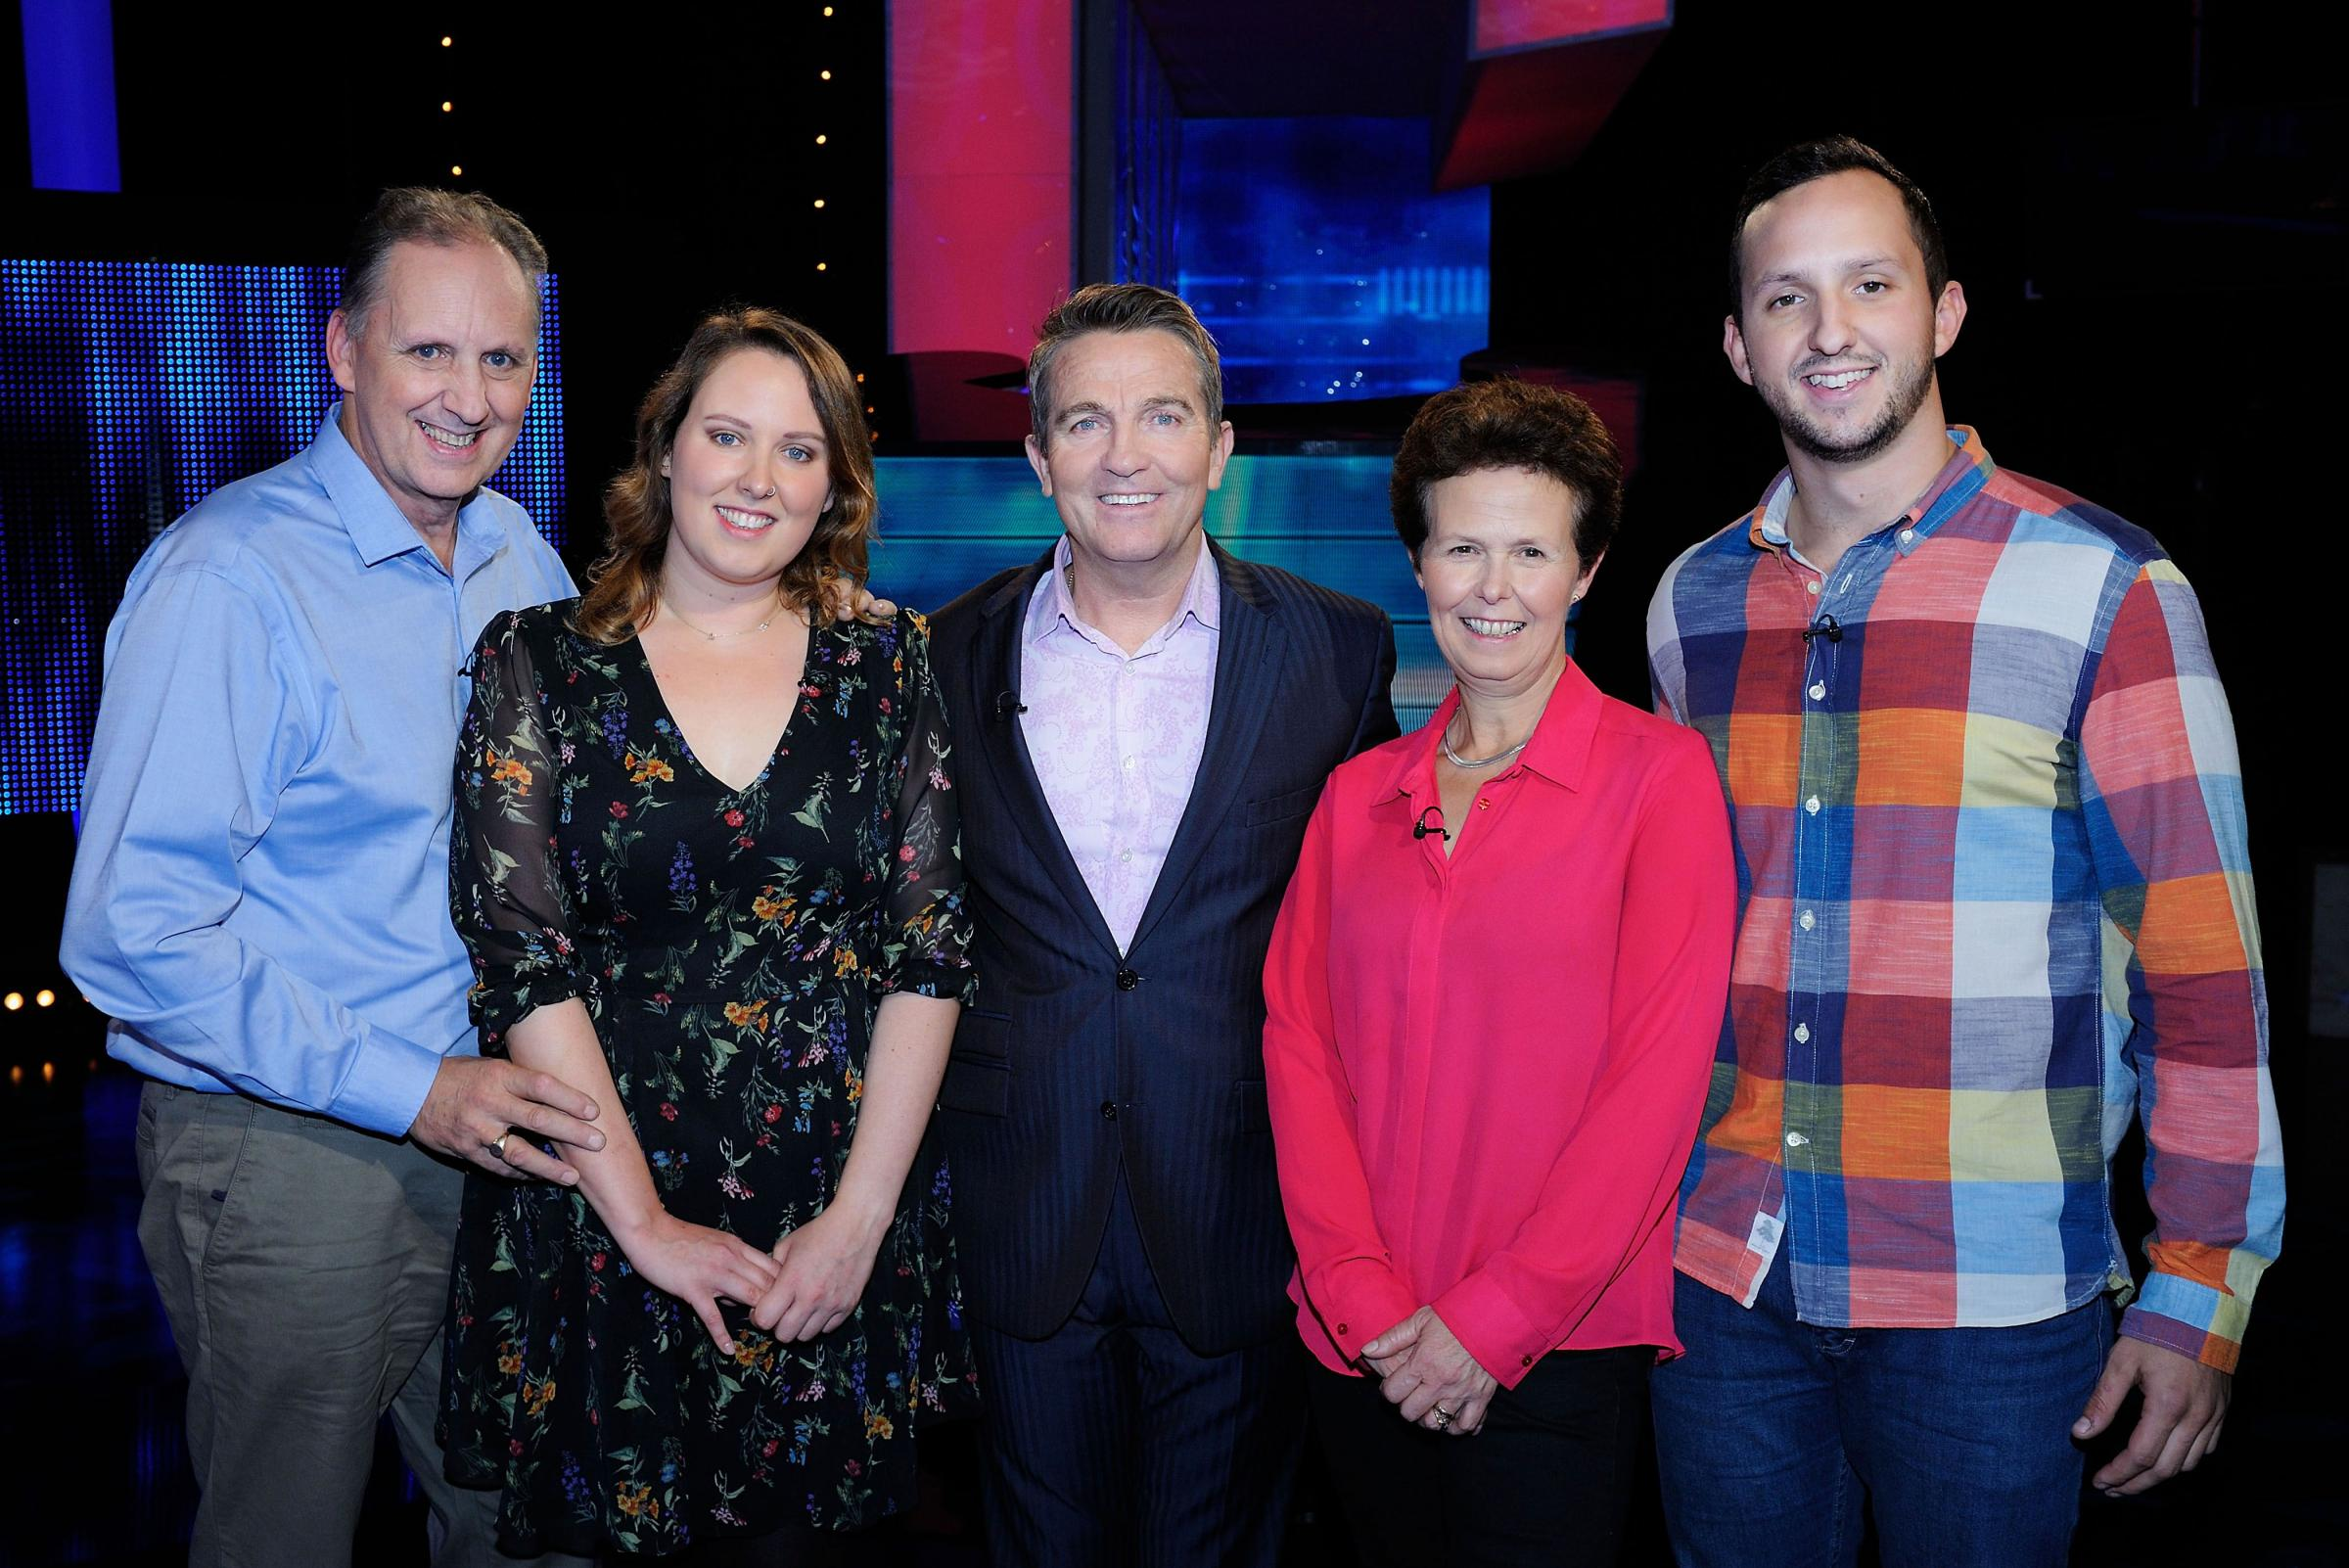 THE CHASE: The Bennett family on The Family Chase (ITV)